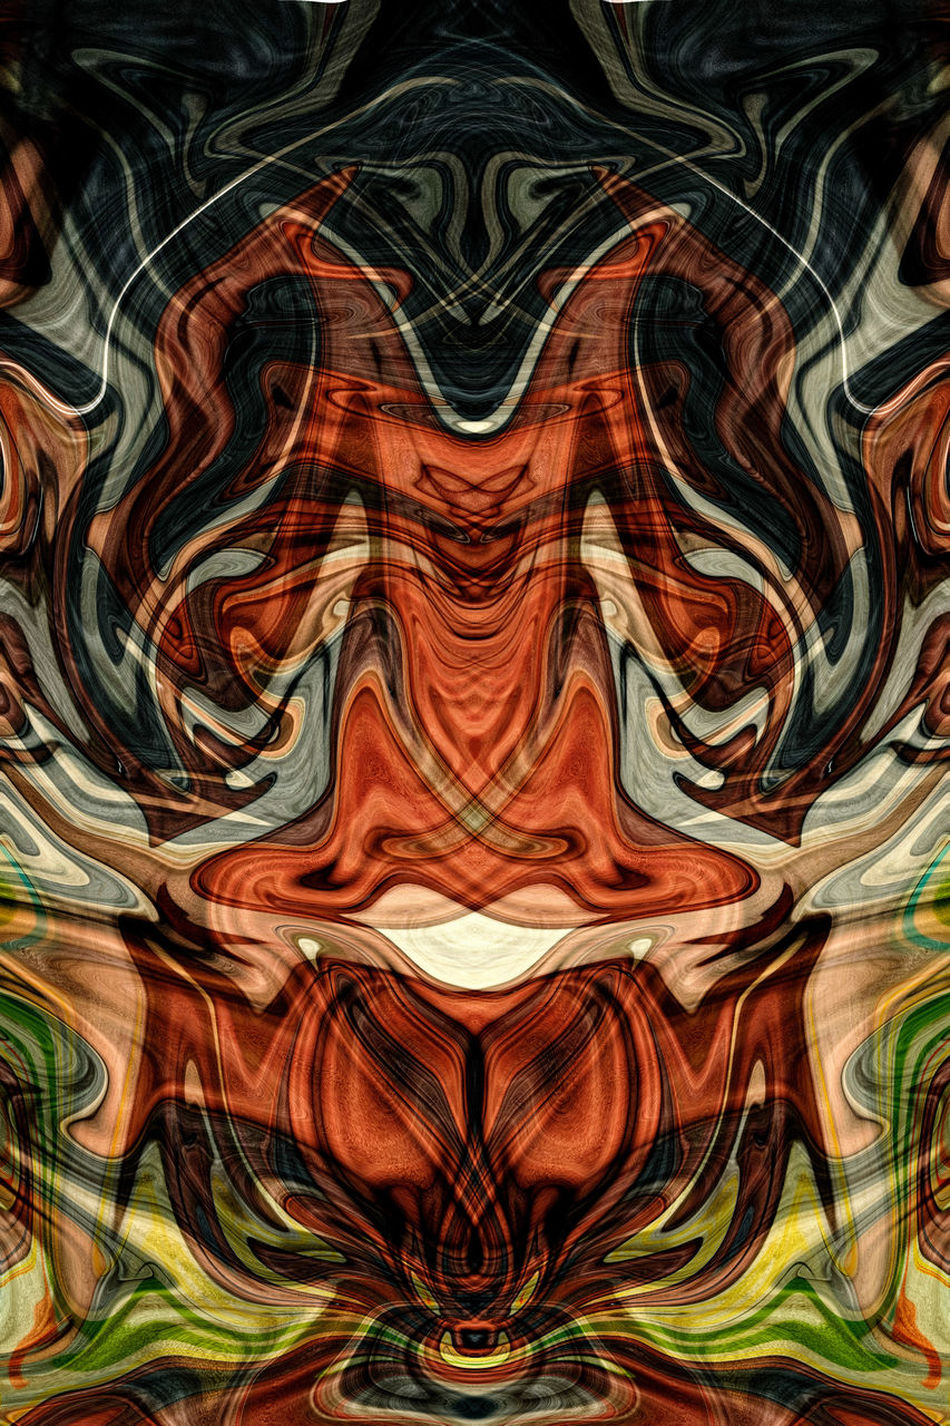 What do YOU see? Please share in the comments so we see it too. Popular Photos Double Exposure Abstract Art Creative Power Artistic Expression What Do You See? Recreating The Look Darryn Doyle Beauty Redefined Shapes And Patterns  Abstract Today's Hot Look Artistic Freedom Colorsplash EyeEm Gallery Check This Out Shaping Thoughts Your Imaginarium.Hello World Digital Imaging Taking Photos Oddbeauty Abstract Art Digital Manipulation Outside The Box